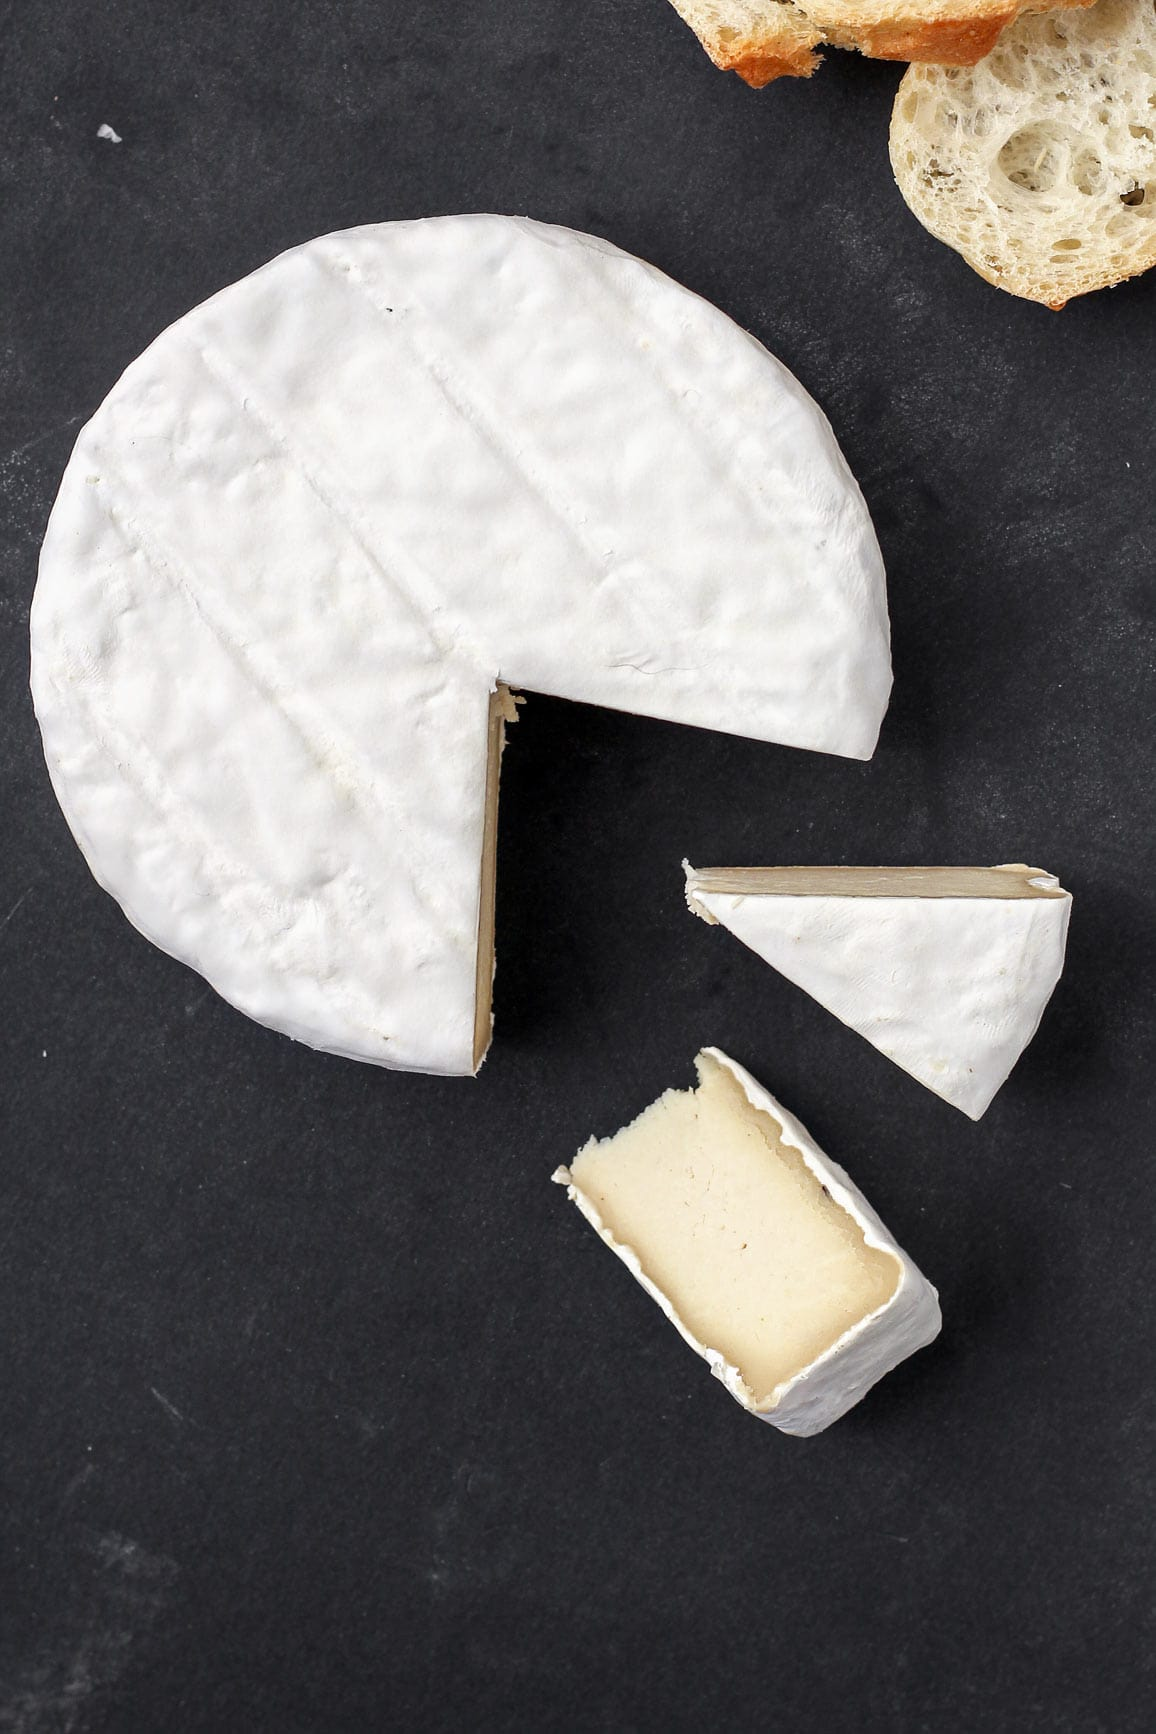 Vegan Aged Camembert Cheese on a black background.